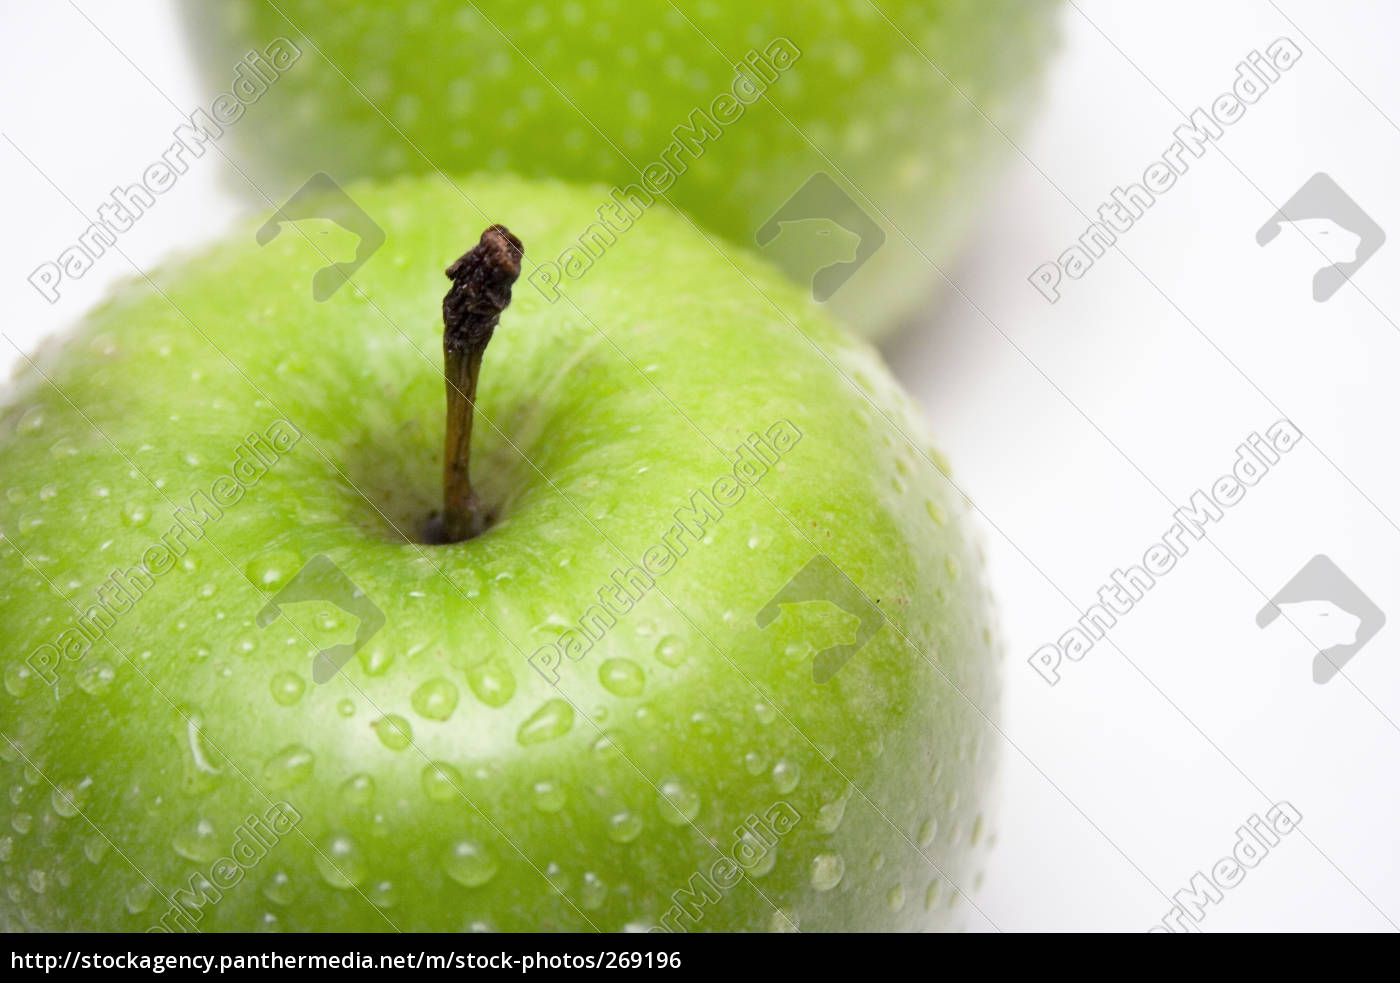 two, green, wet, apples - 269196